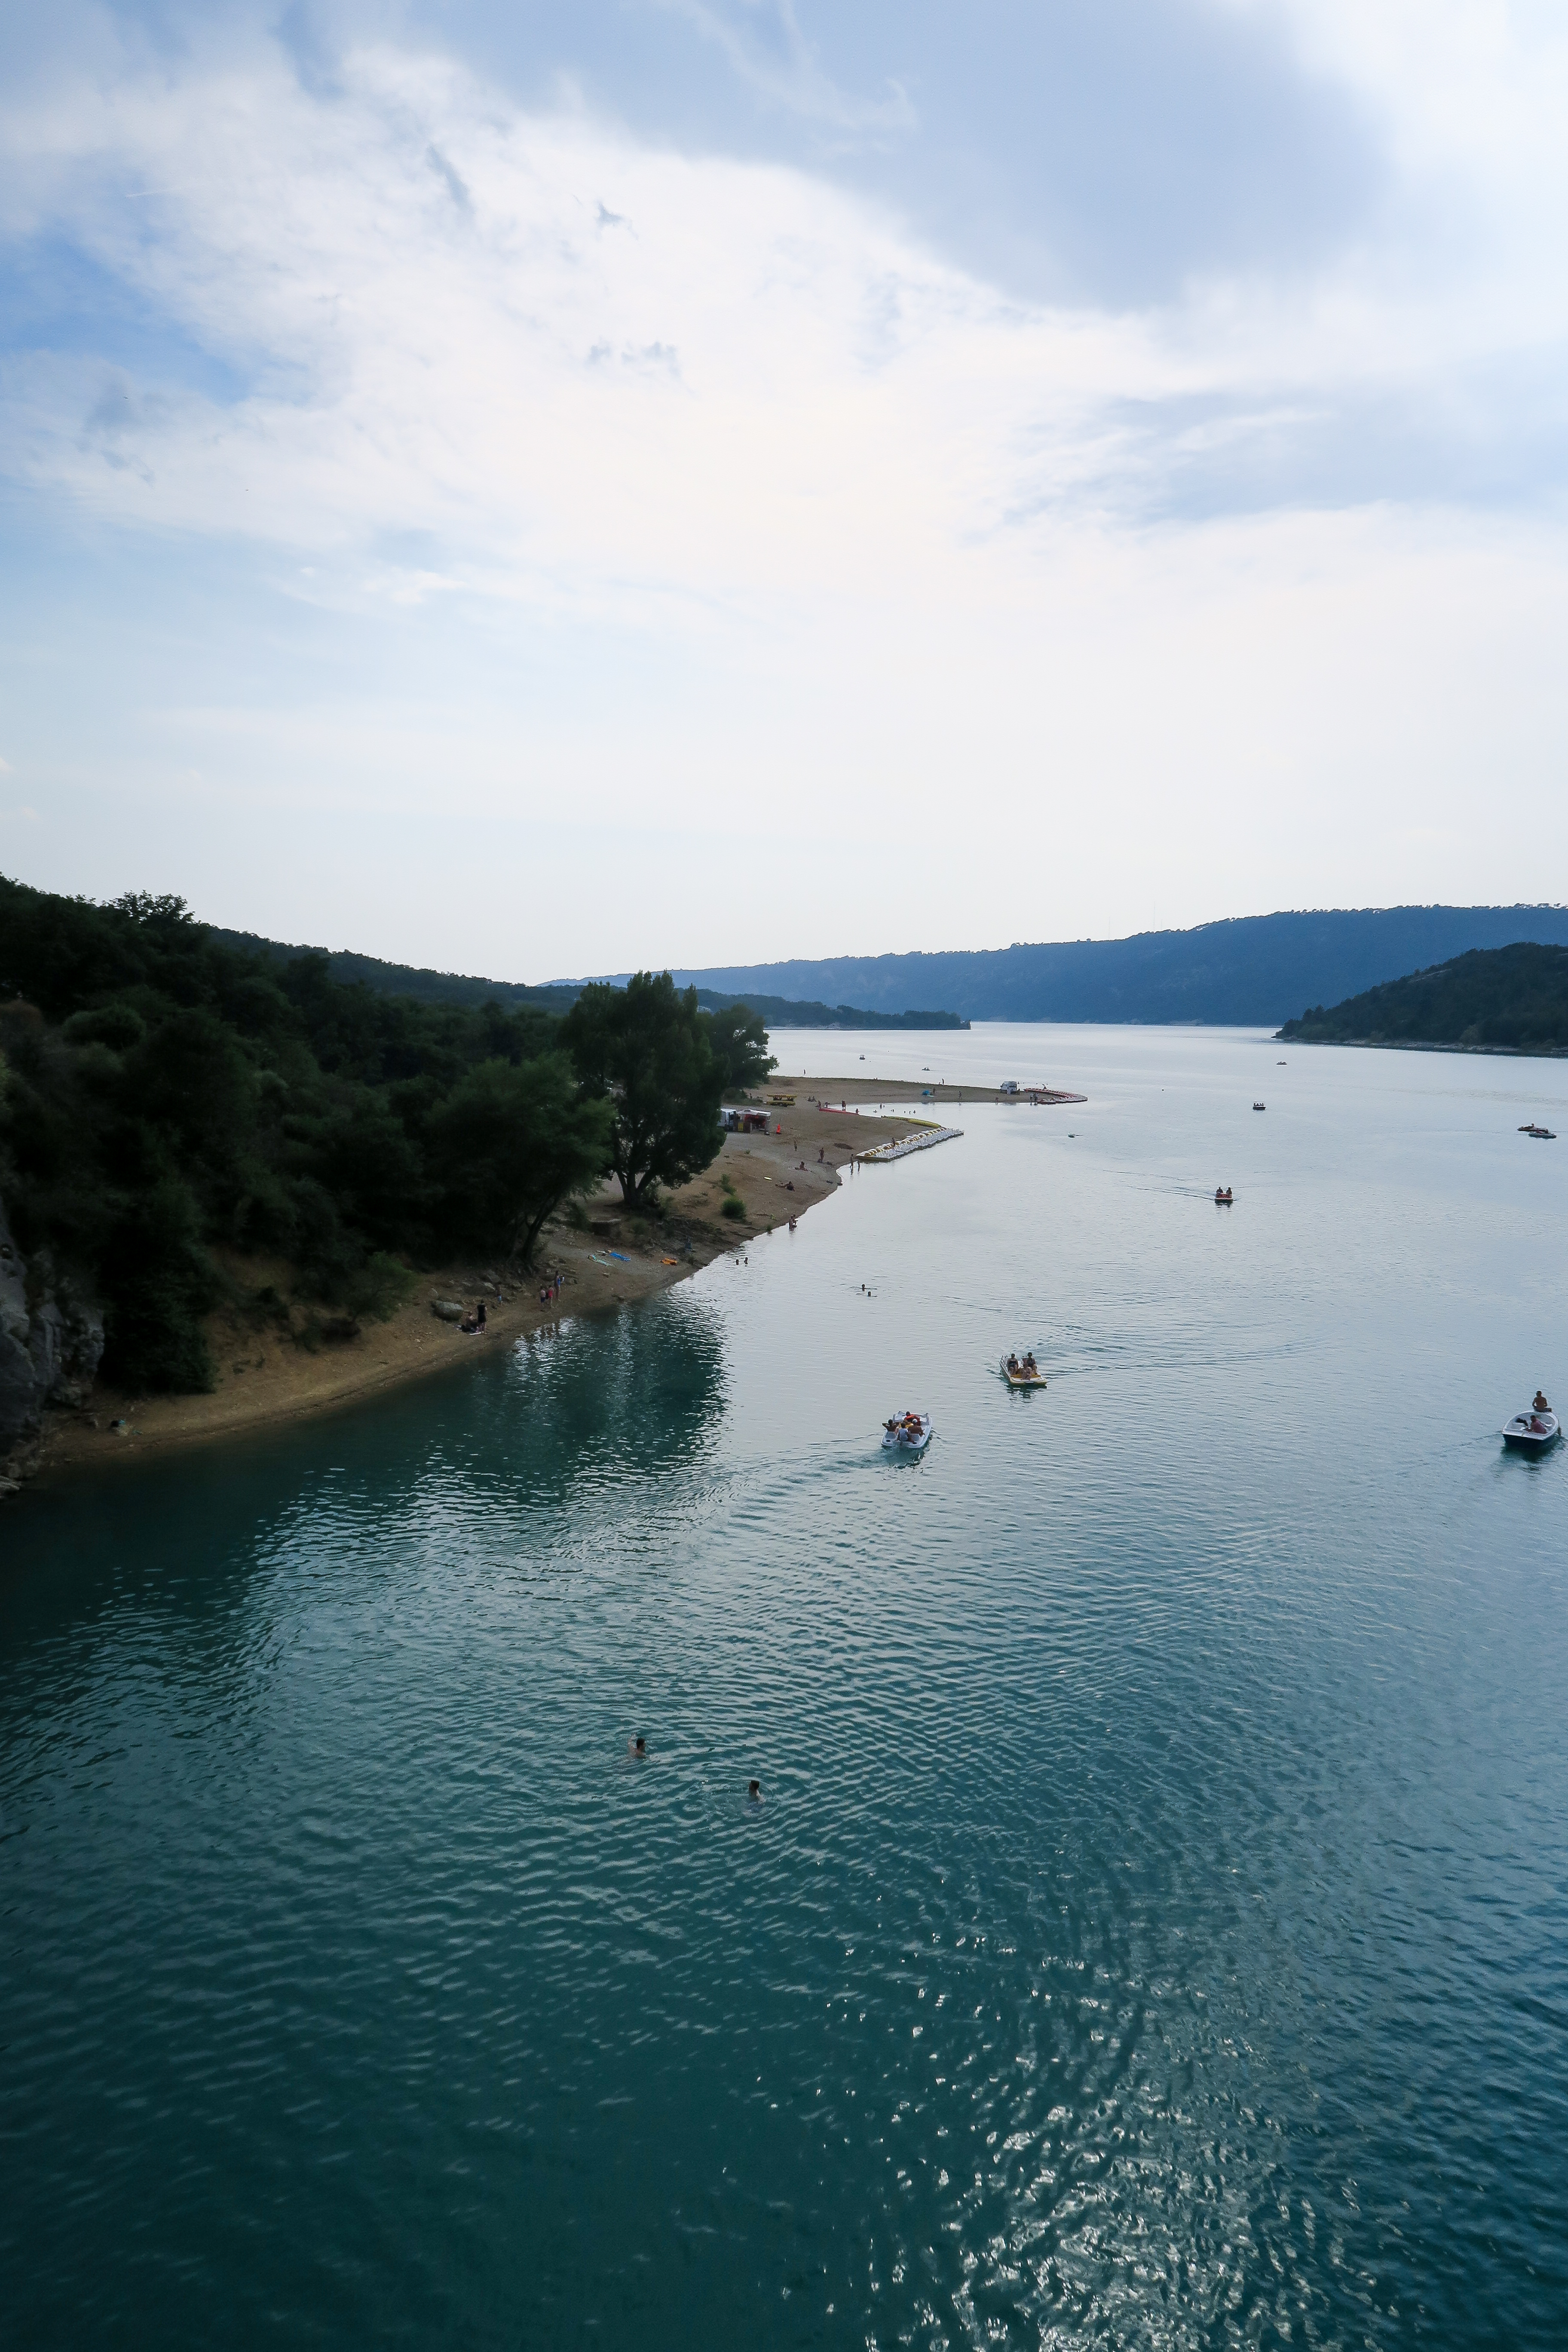 Gorges du Verdon, South of France. Travel Diary by Rosie Andre. (nature, photographs, lake, gorges, lac, boats, countryside, paysage, hills, mountains, canoe, kayak, pedalo, paddle board, travel, wanderlust, honeymoon, provence, var, holiday, vacation)